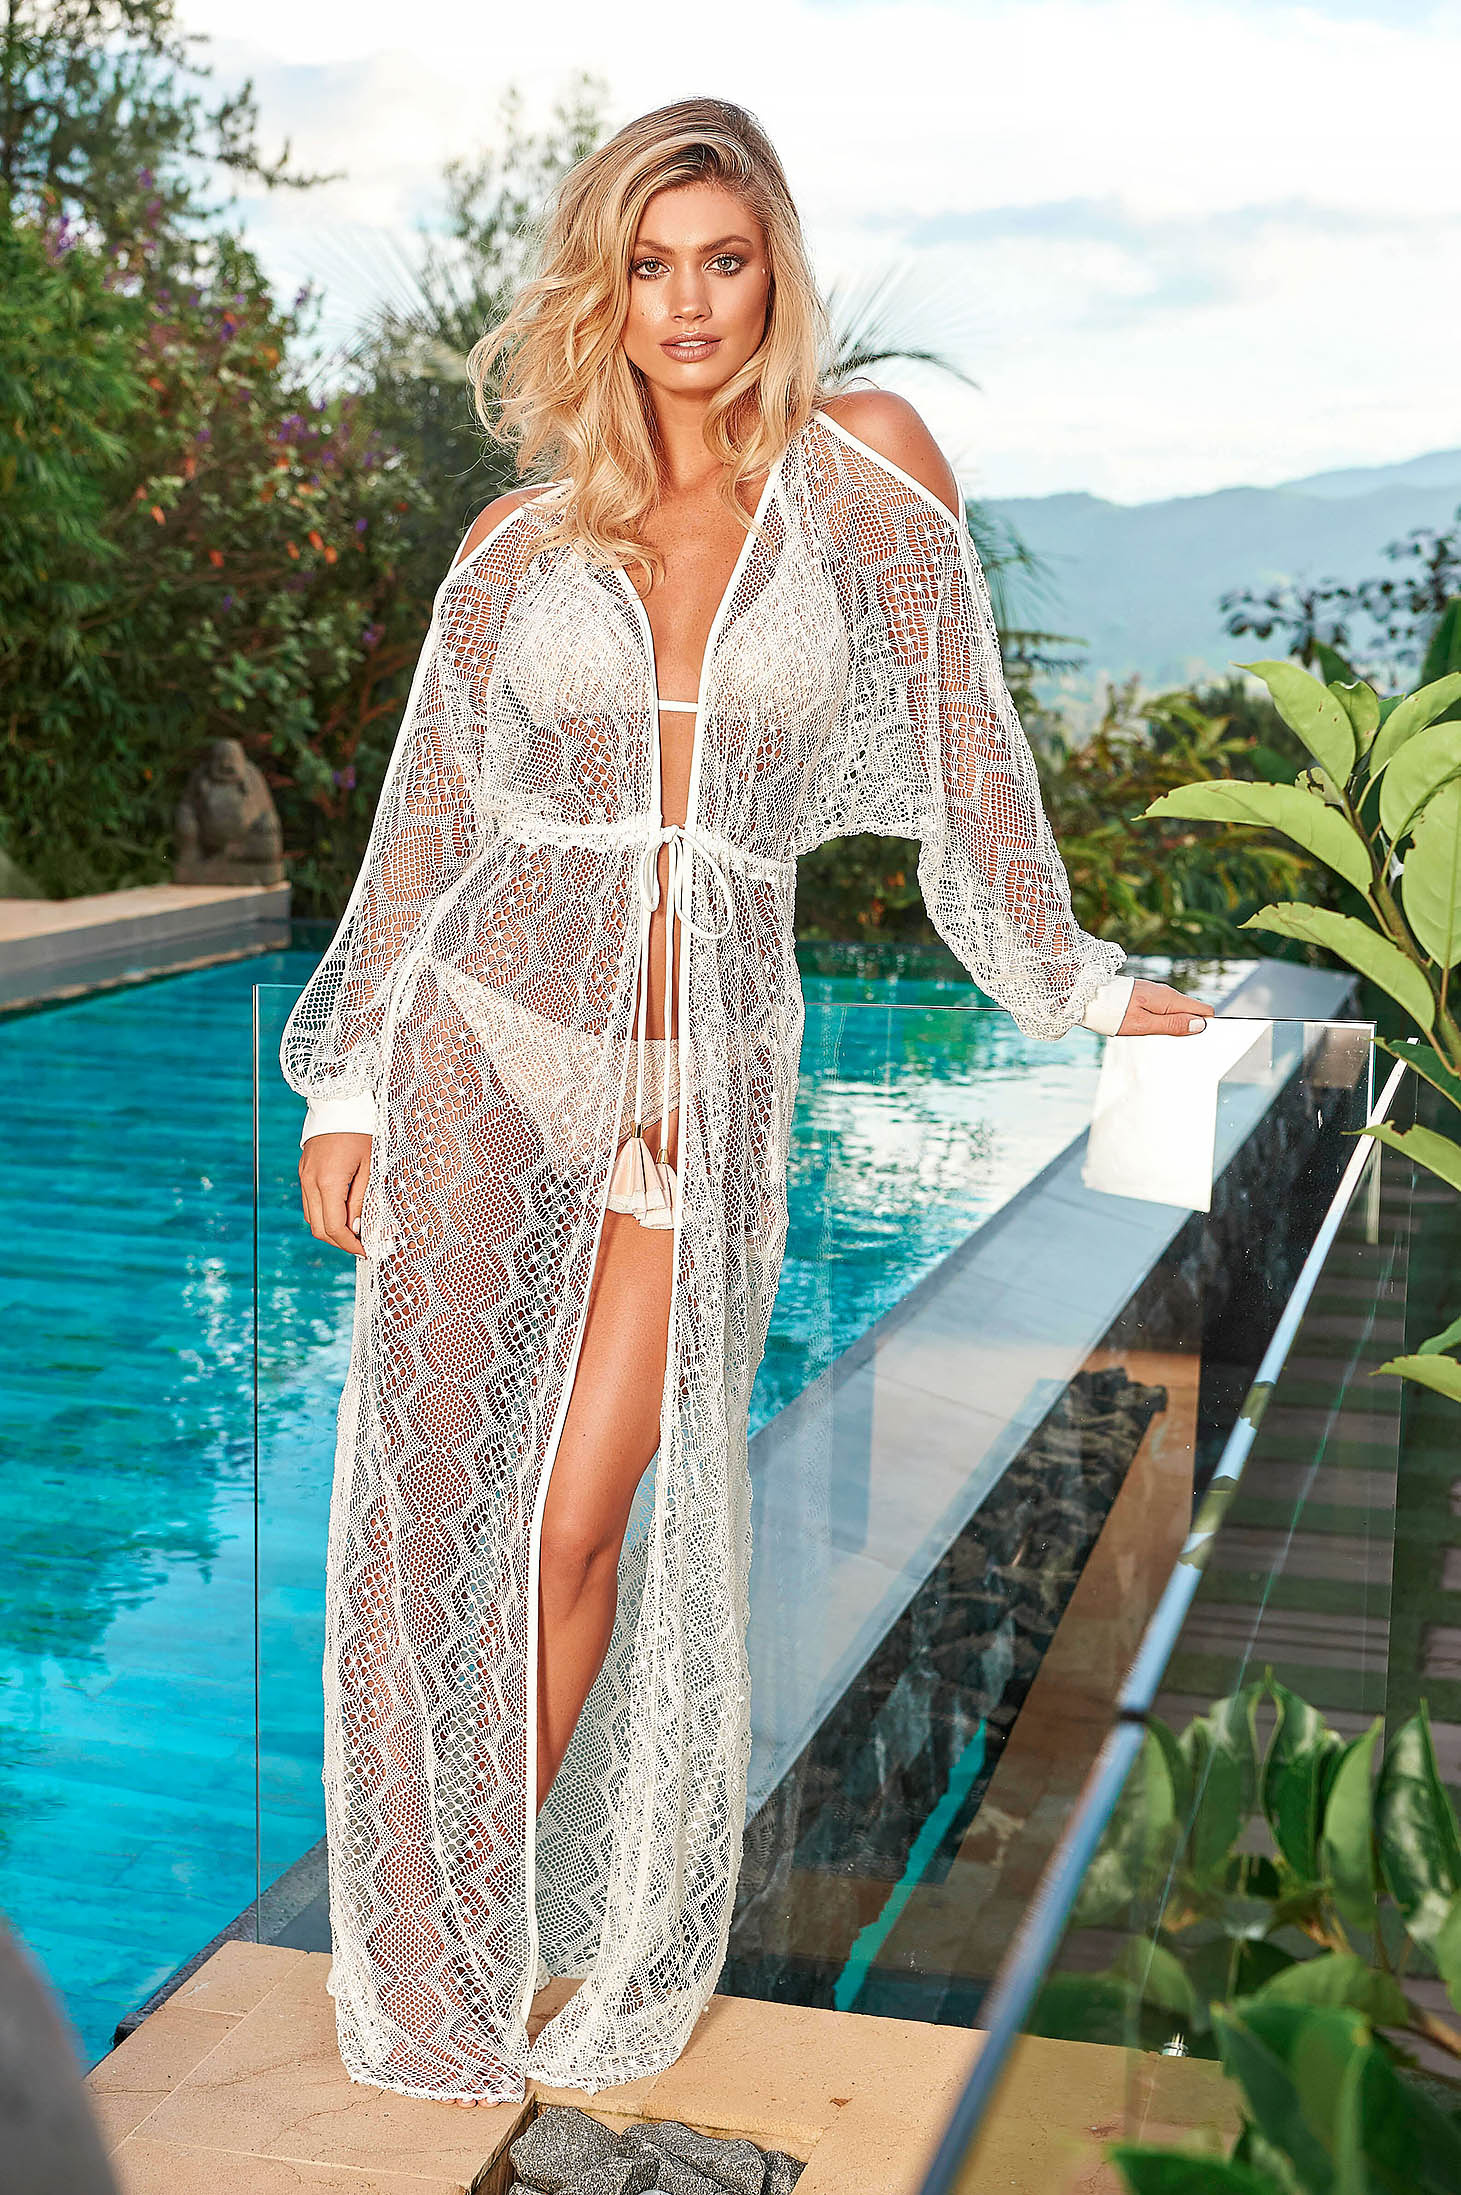 Cosita Linda cream luxurious from two pieces swimsuit with classical slip triangle bra